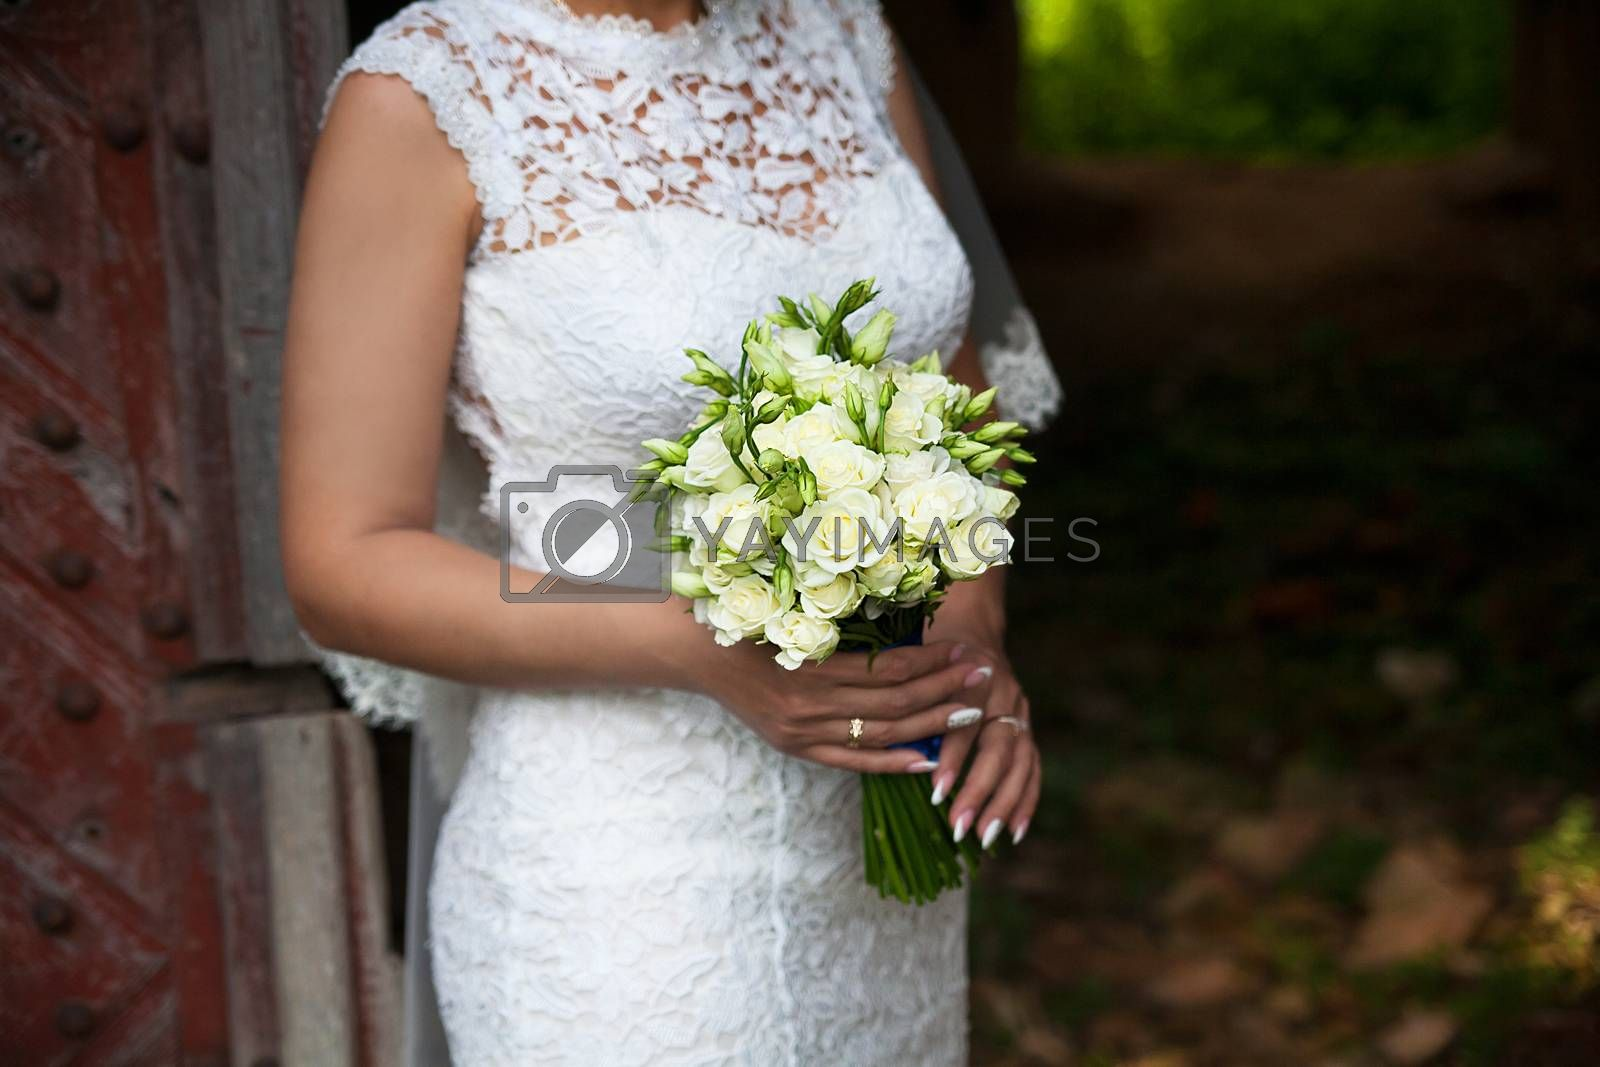 Royalty free image of Bride holding wedding flower bouquet of roses. by sfinks